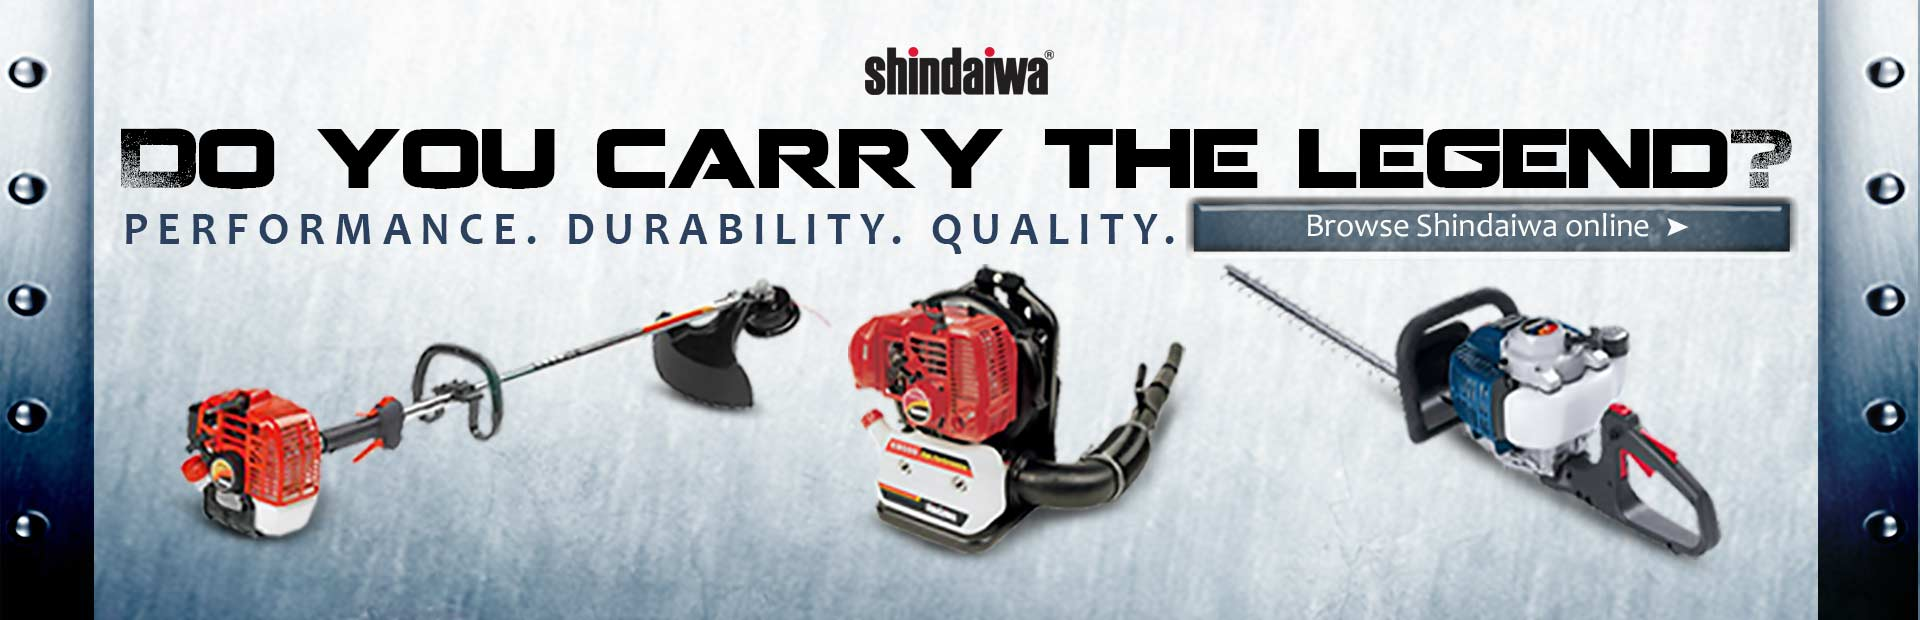 Click here to browse Shindaiwa online.